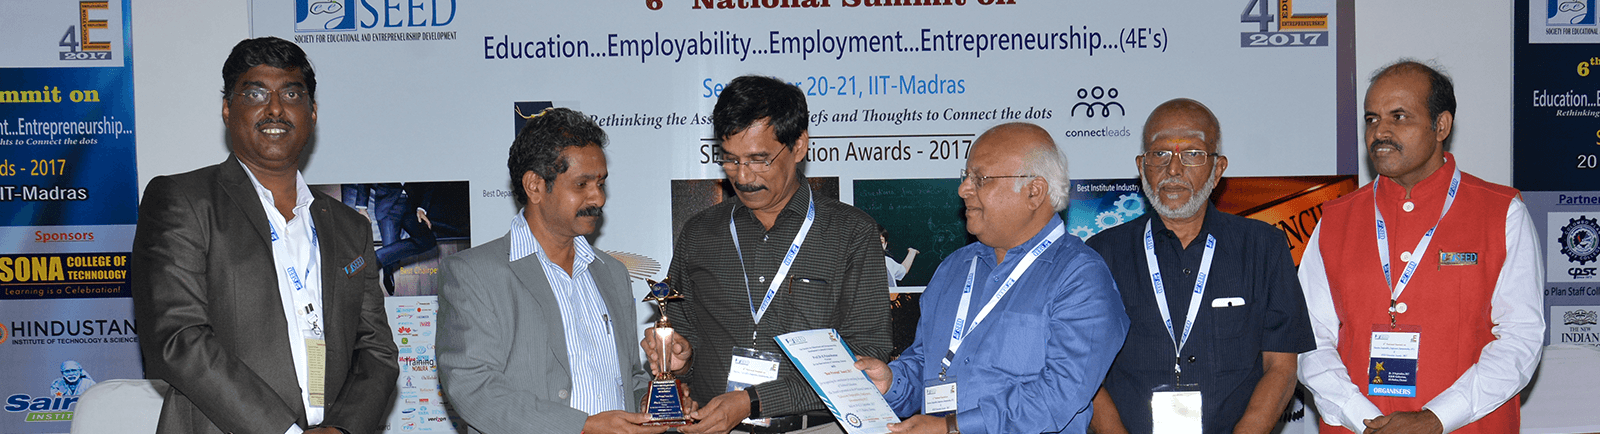 SEED Award on Best Principal for Dr.K.Palanikumar